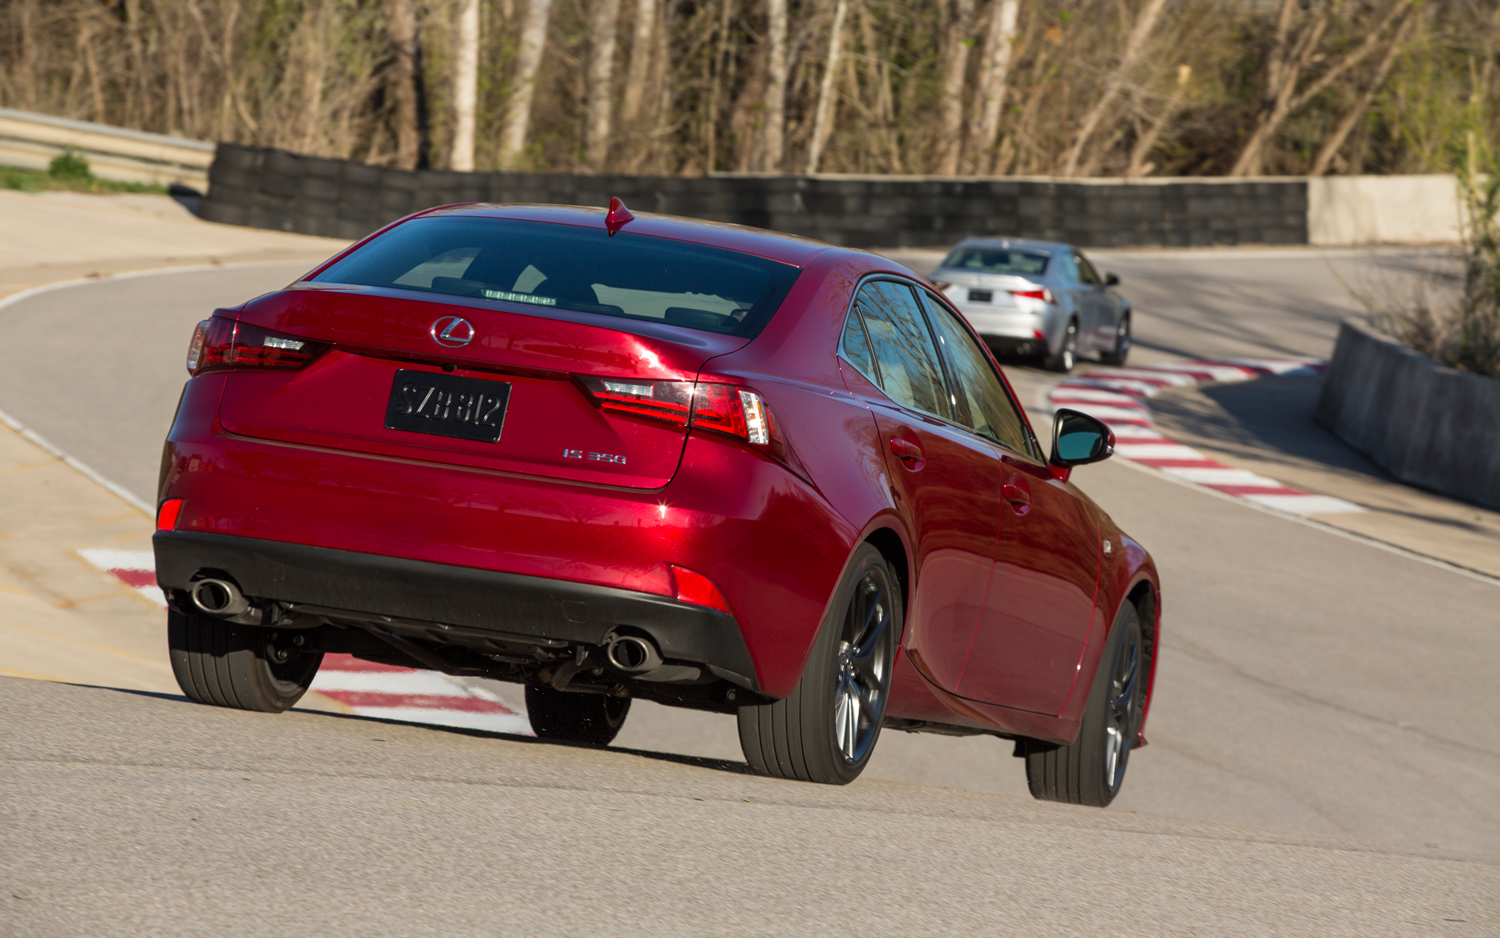 2014-Lexus-IS350s-on-track-corkscrew